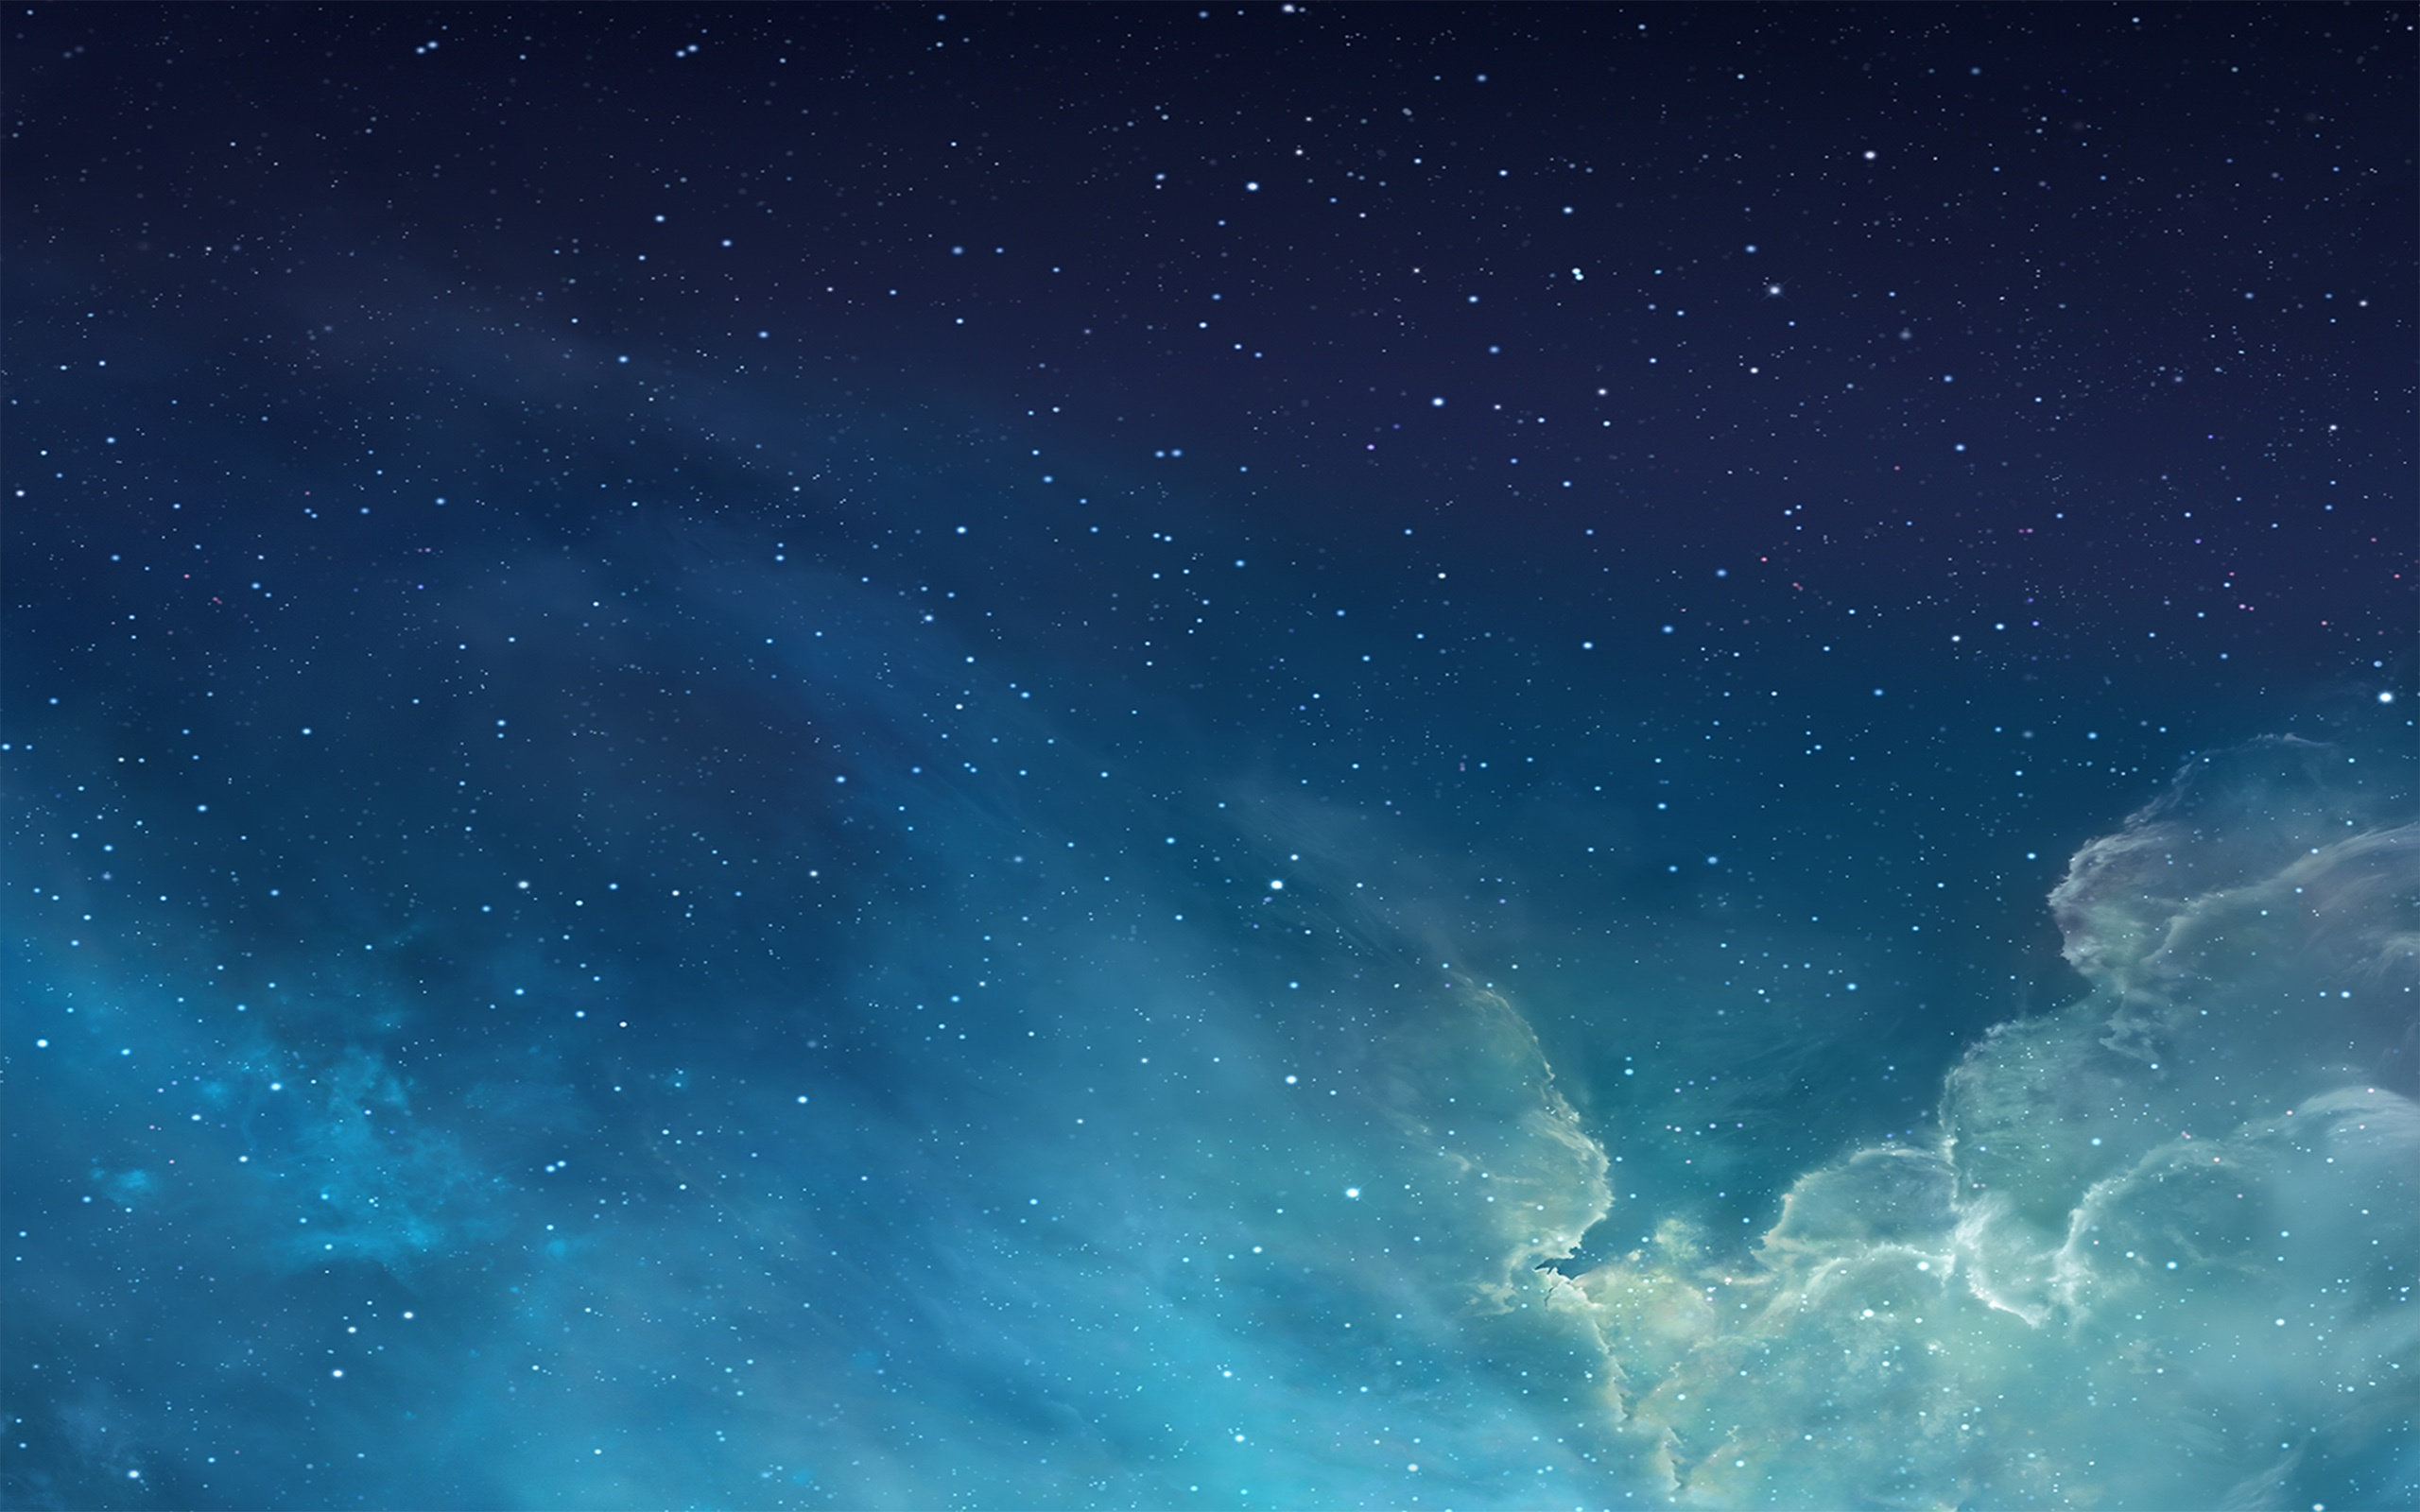 Ios 7 Galaxy Wallpapers In Jpg Format For Free Download